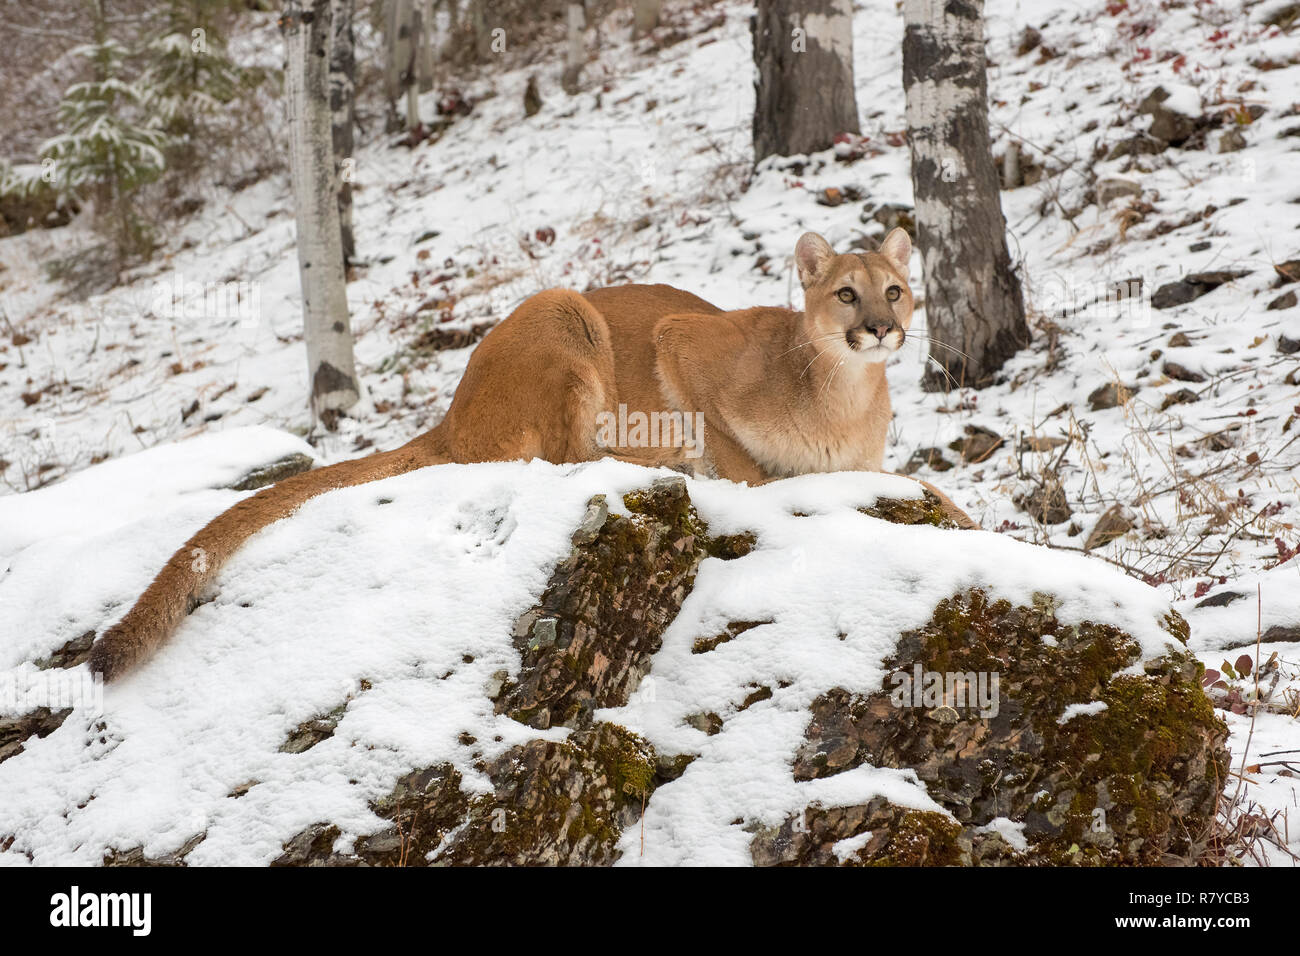 Mountain Lion Crouched down atop a Boulder in Snow, Looking Up - Stock Image